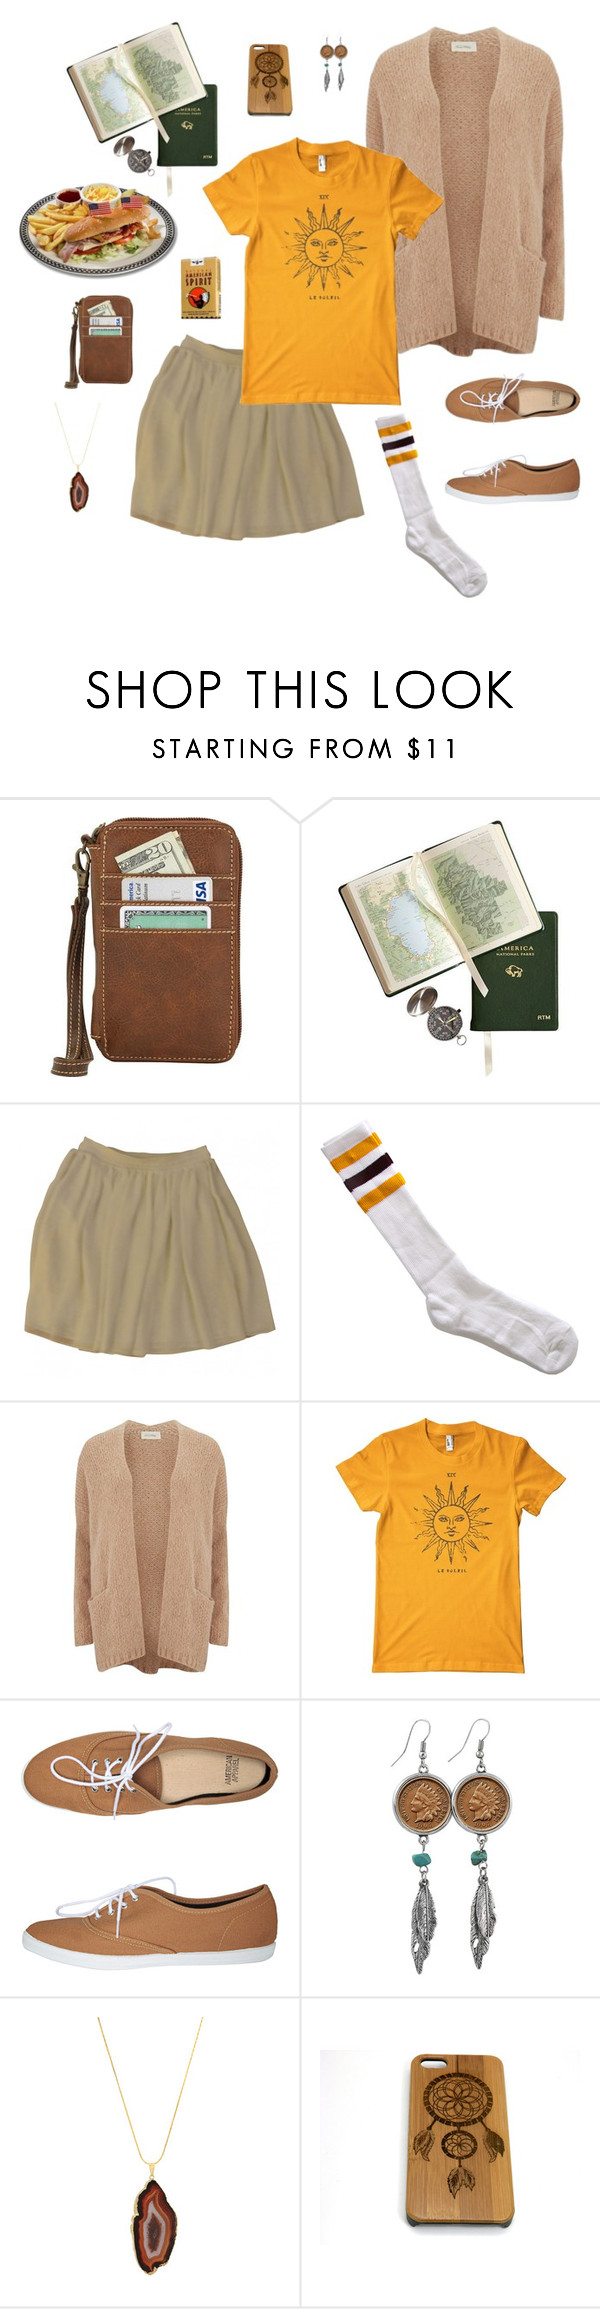 """""""Untitled #905"""" by ninfodora ❤ liked on Polyvore featuring American Apparel, American Vintage and American Coin Treasures"""